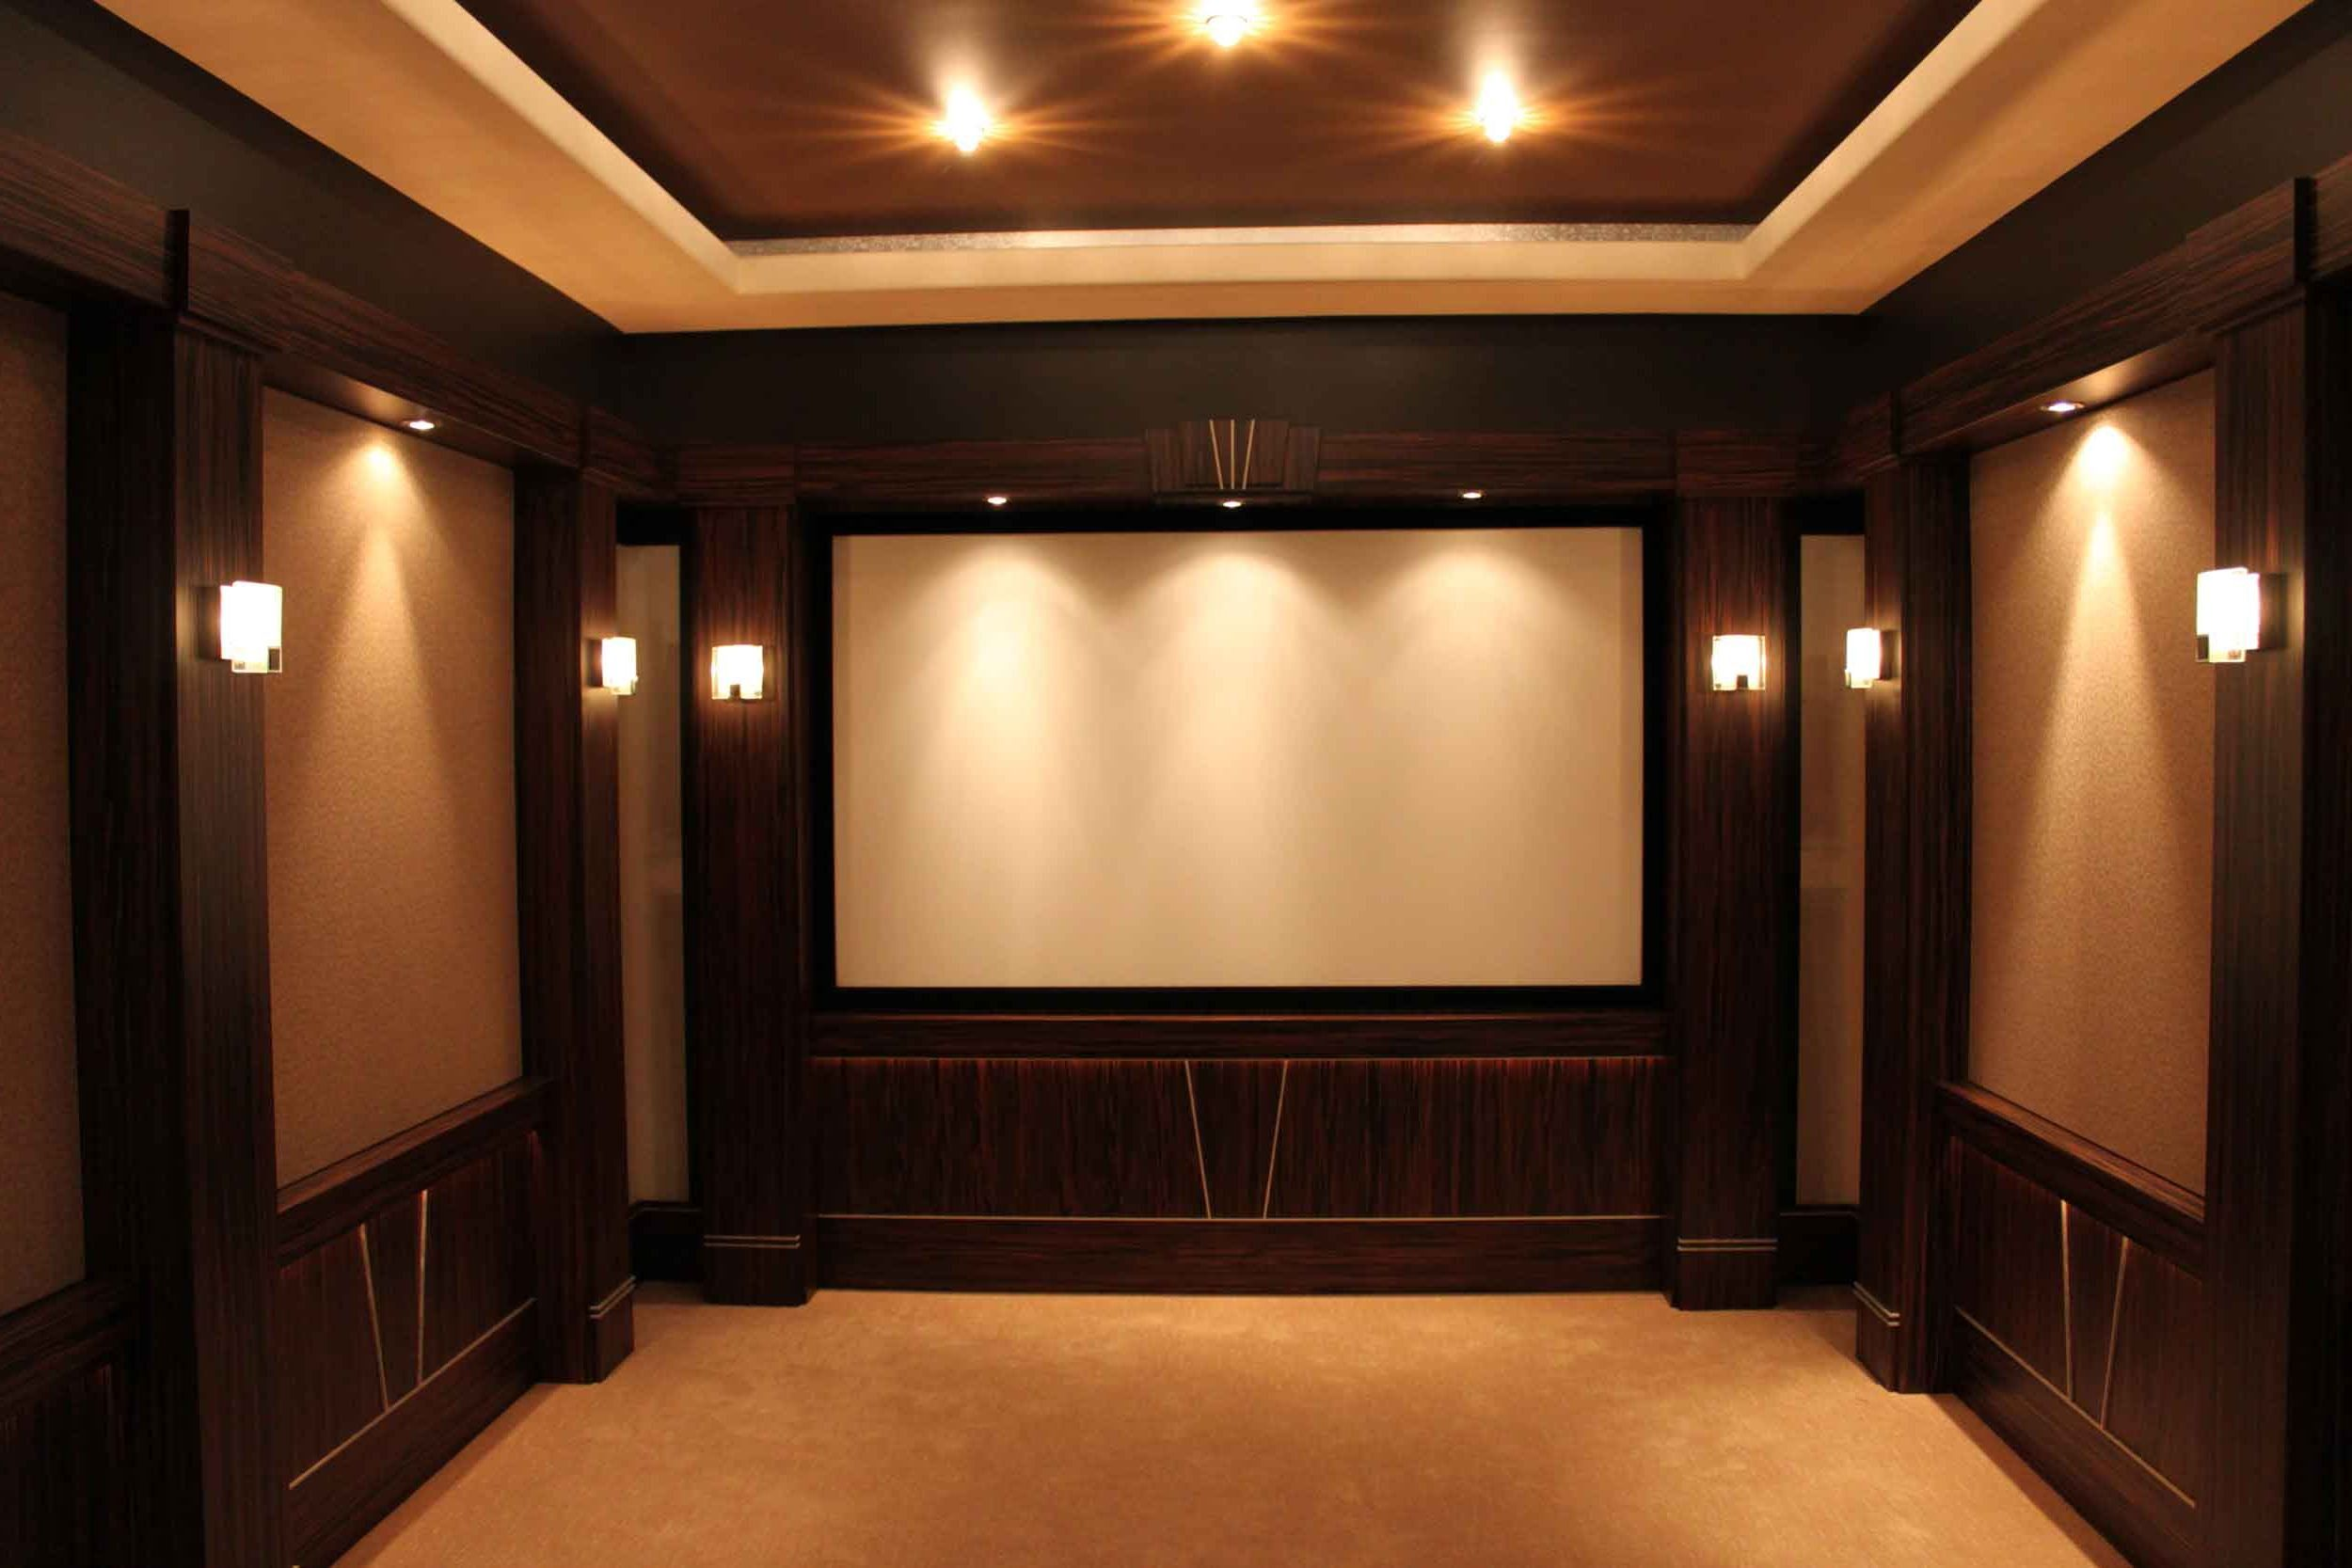 Looking for somewhere to waste time? Interior Small Home Theater Room Ideas Big Screen On The ...